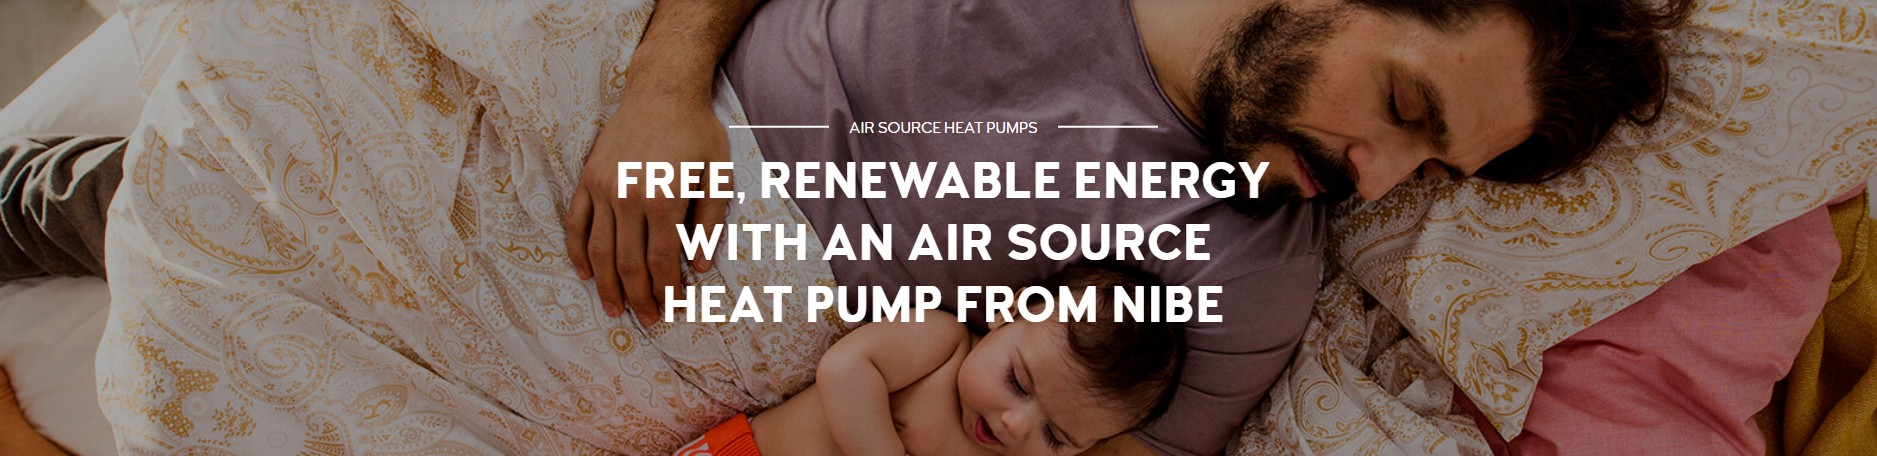 Air Source Heat Pump Grants Scotland 2020